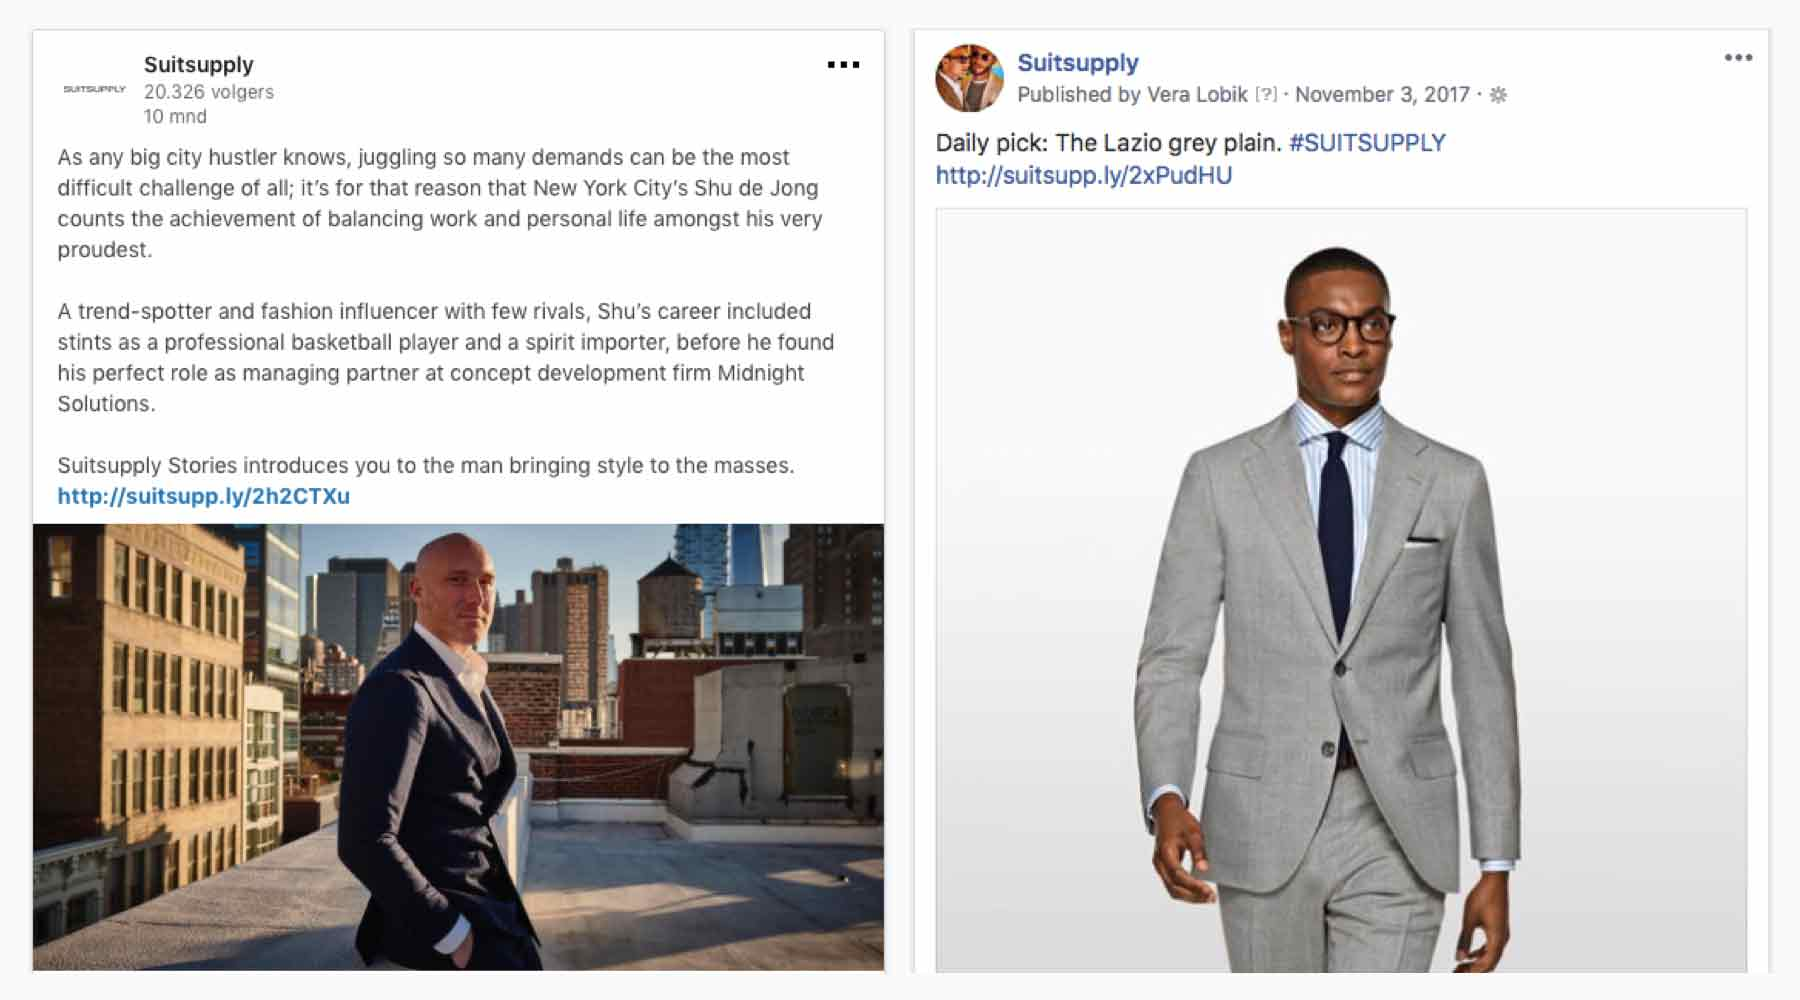 Suitsupply Facebook and Instagram specialist.